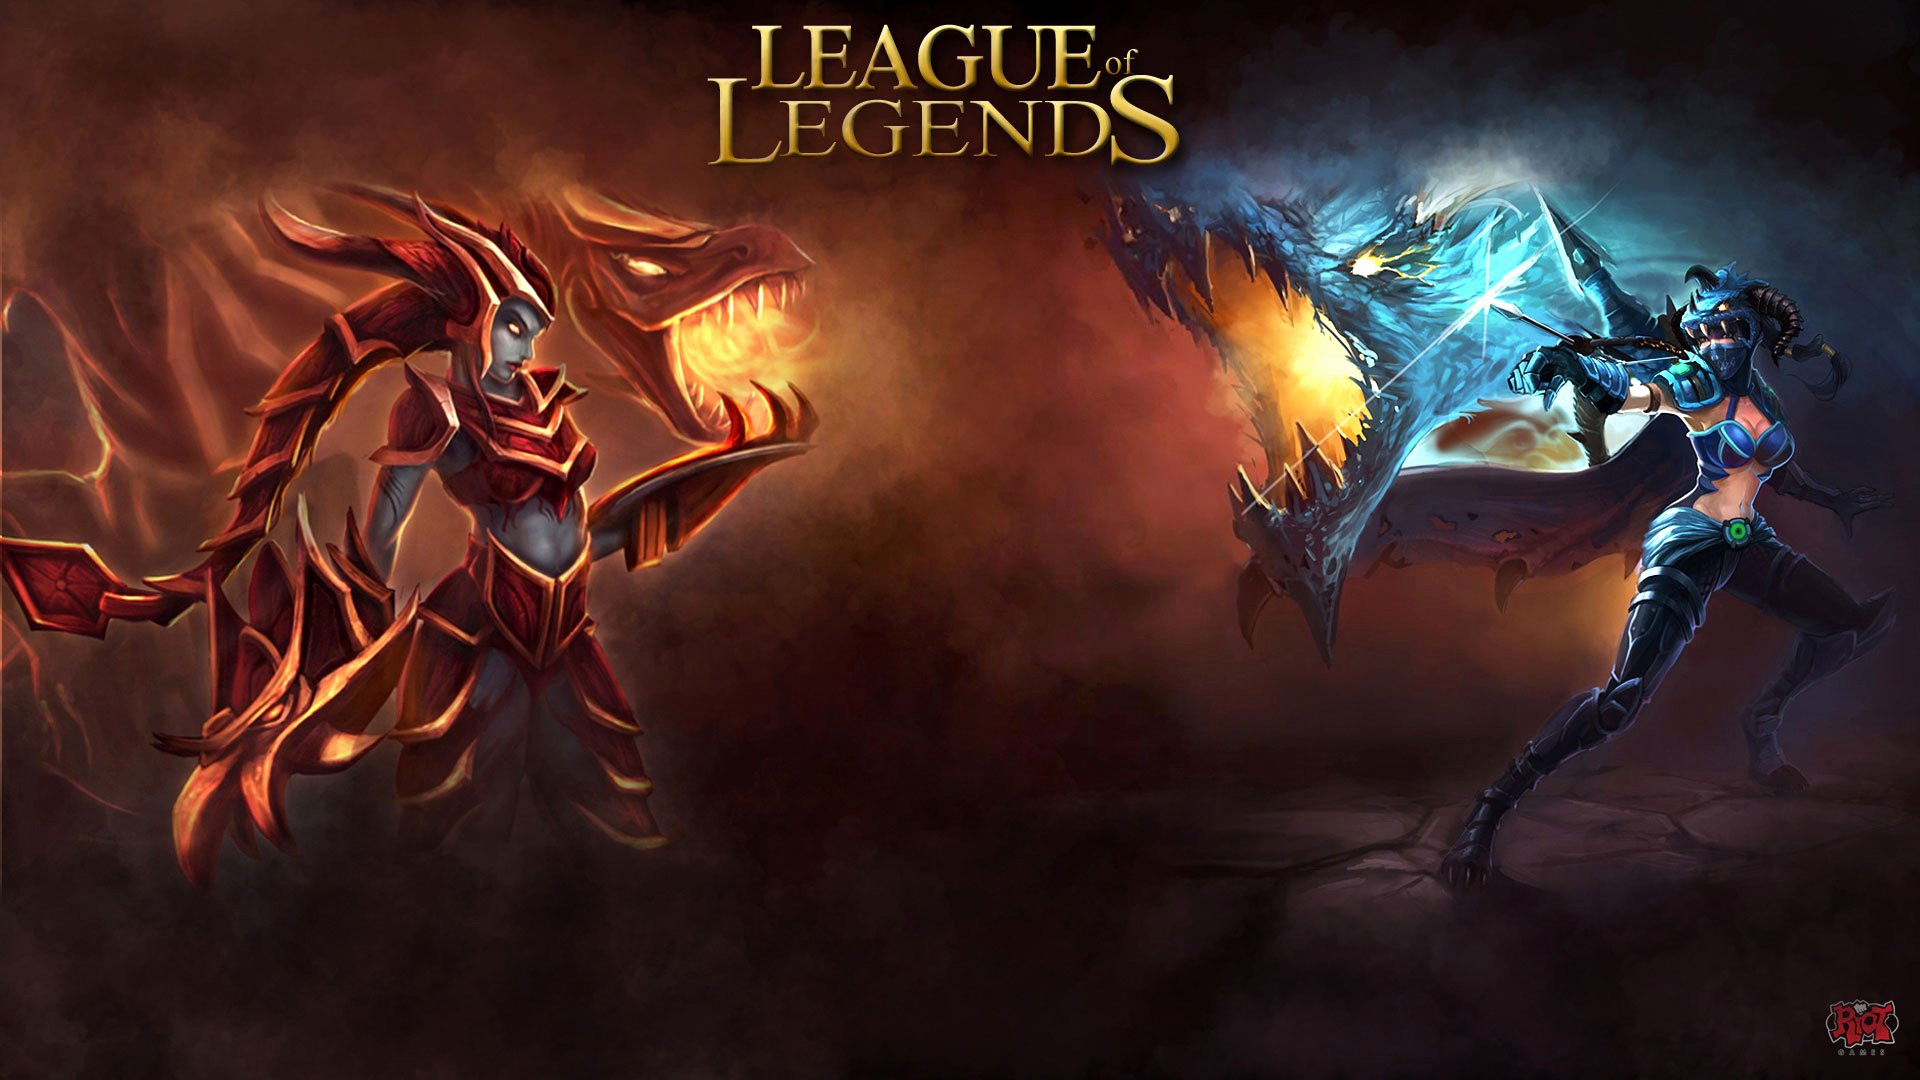 League Of Legends Desktop Wallpaper Posted By Sarah Walker